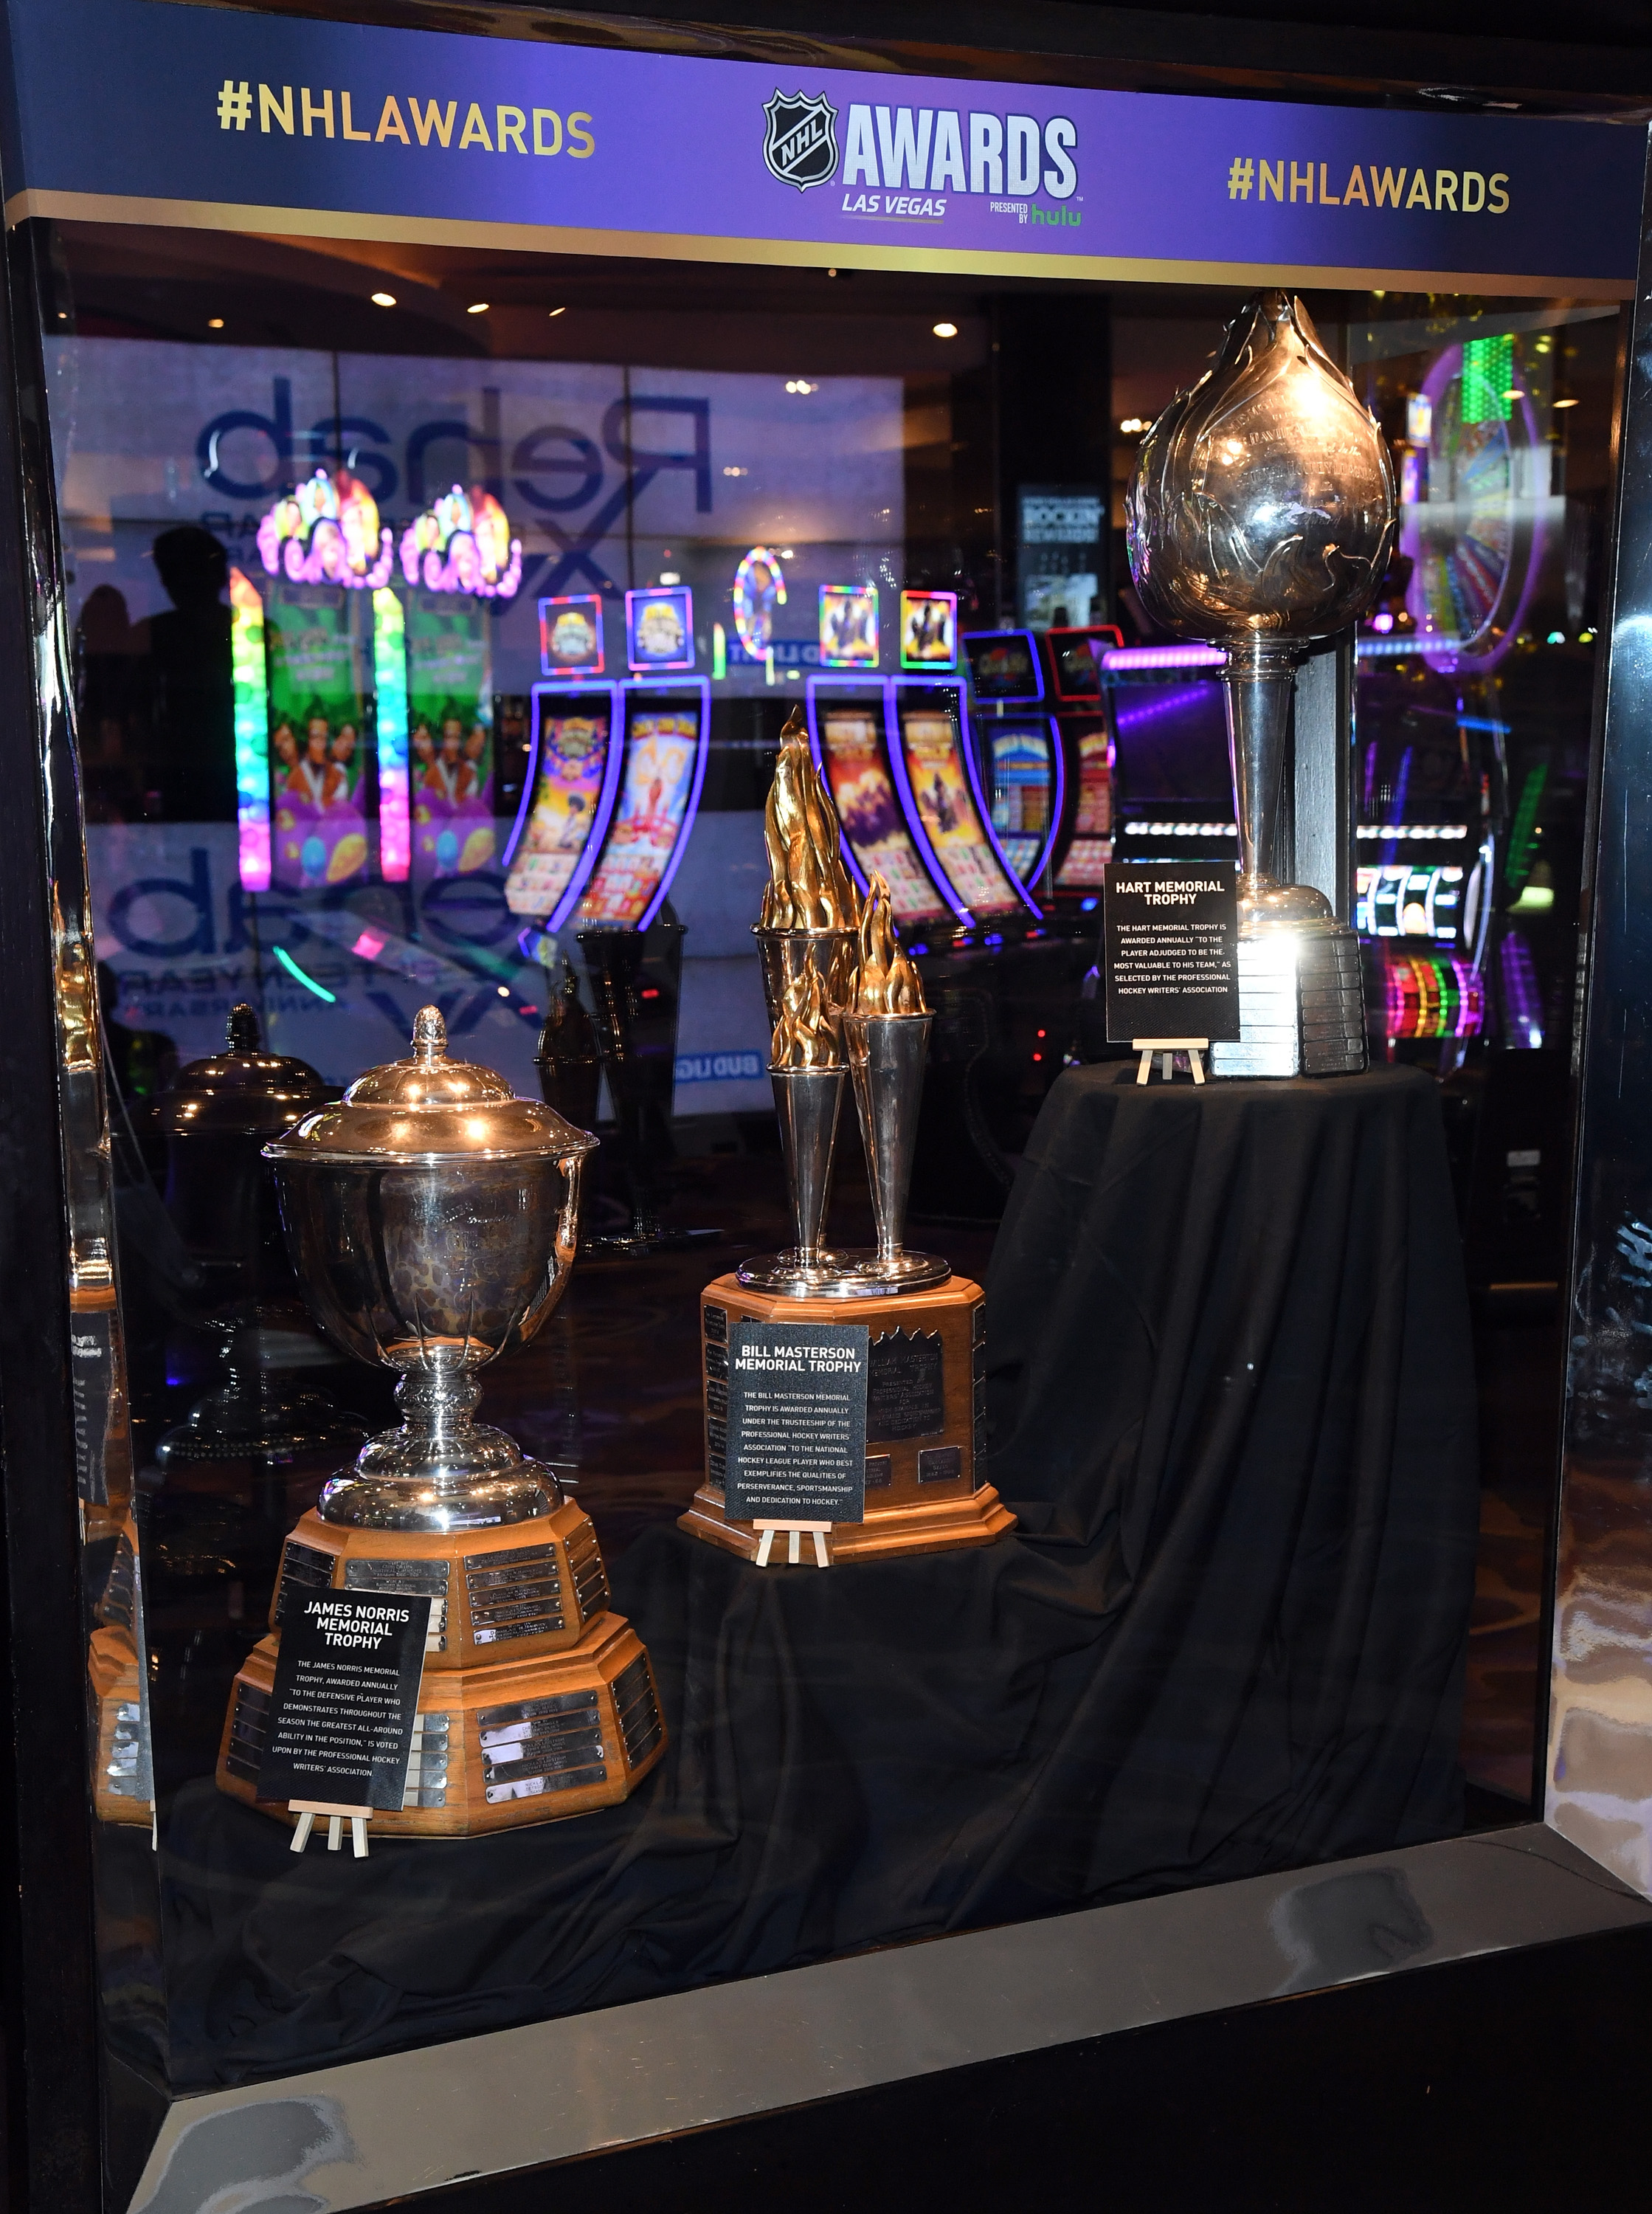 NHL Trophies Displayed At The Hard Rock Hotel & Casino Ahead Of The 2018 NHL Awards